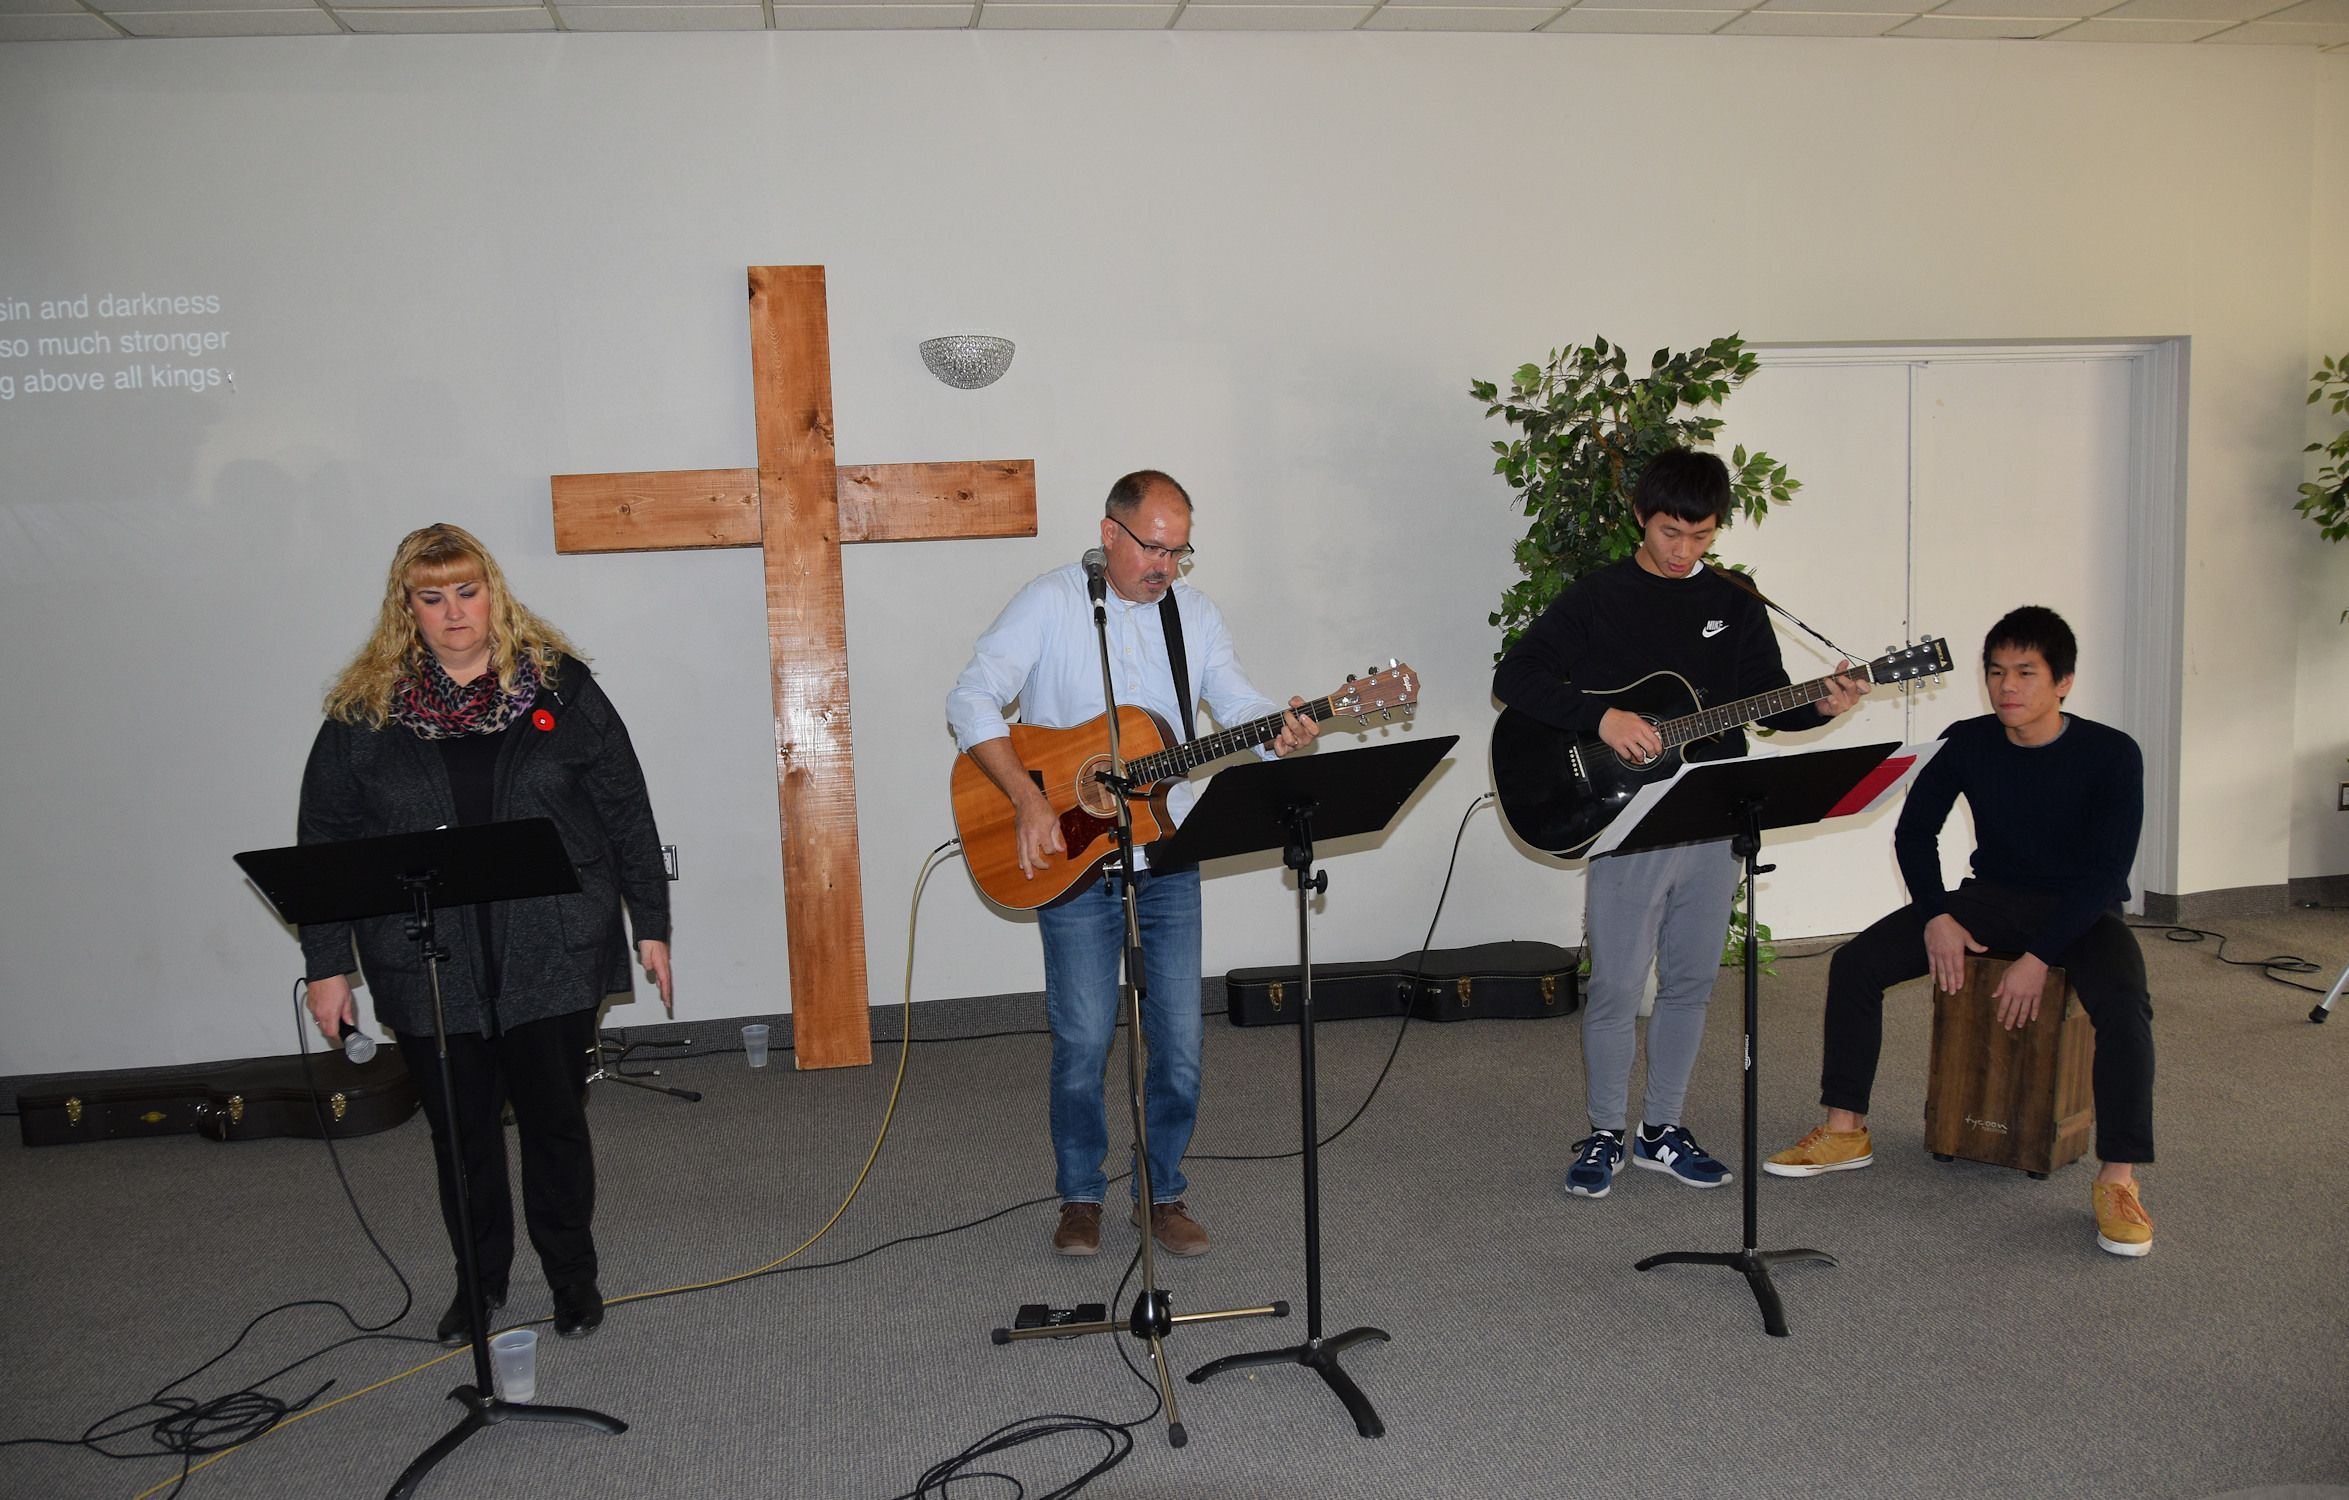 On Sundays, LifeHouse meets for worship in a local golf club.